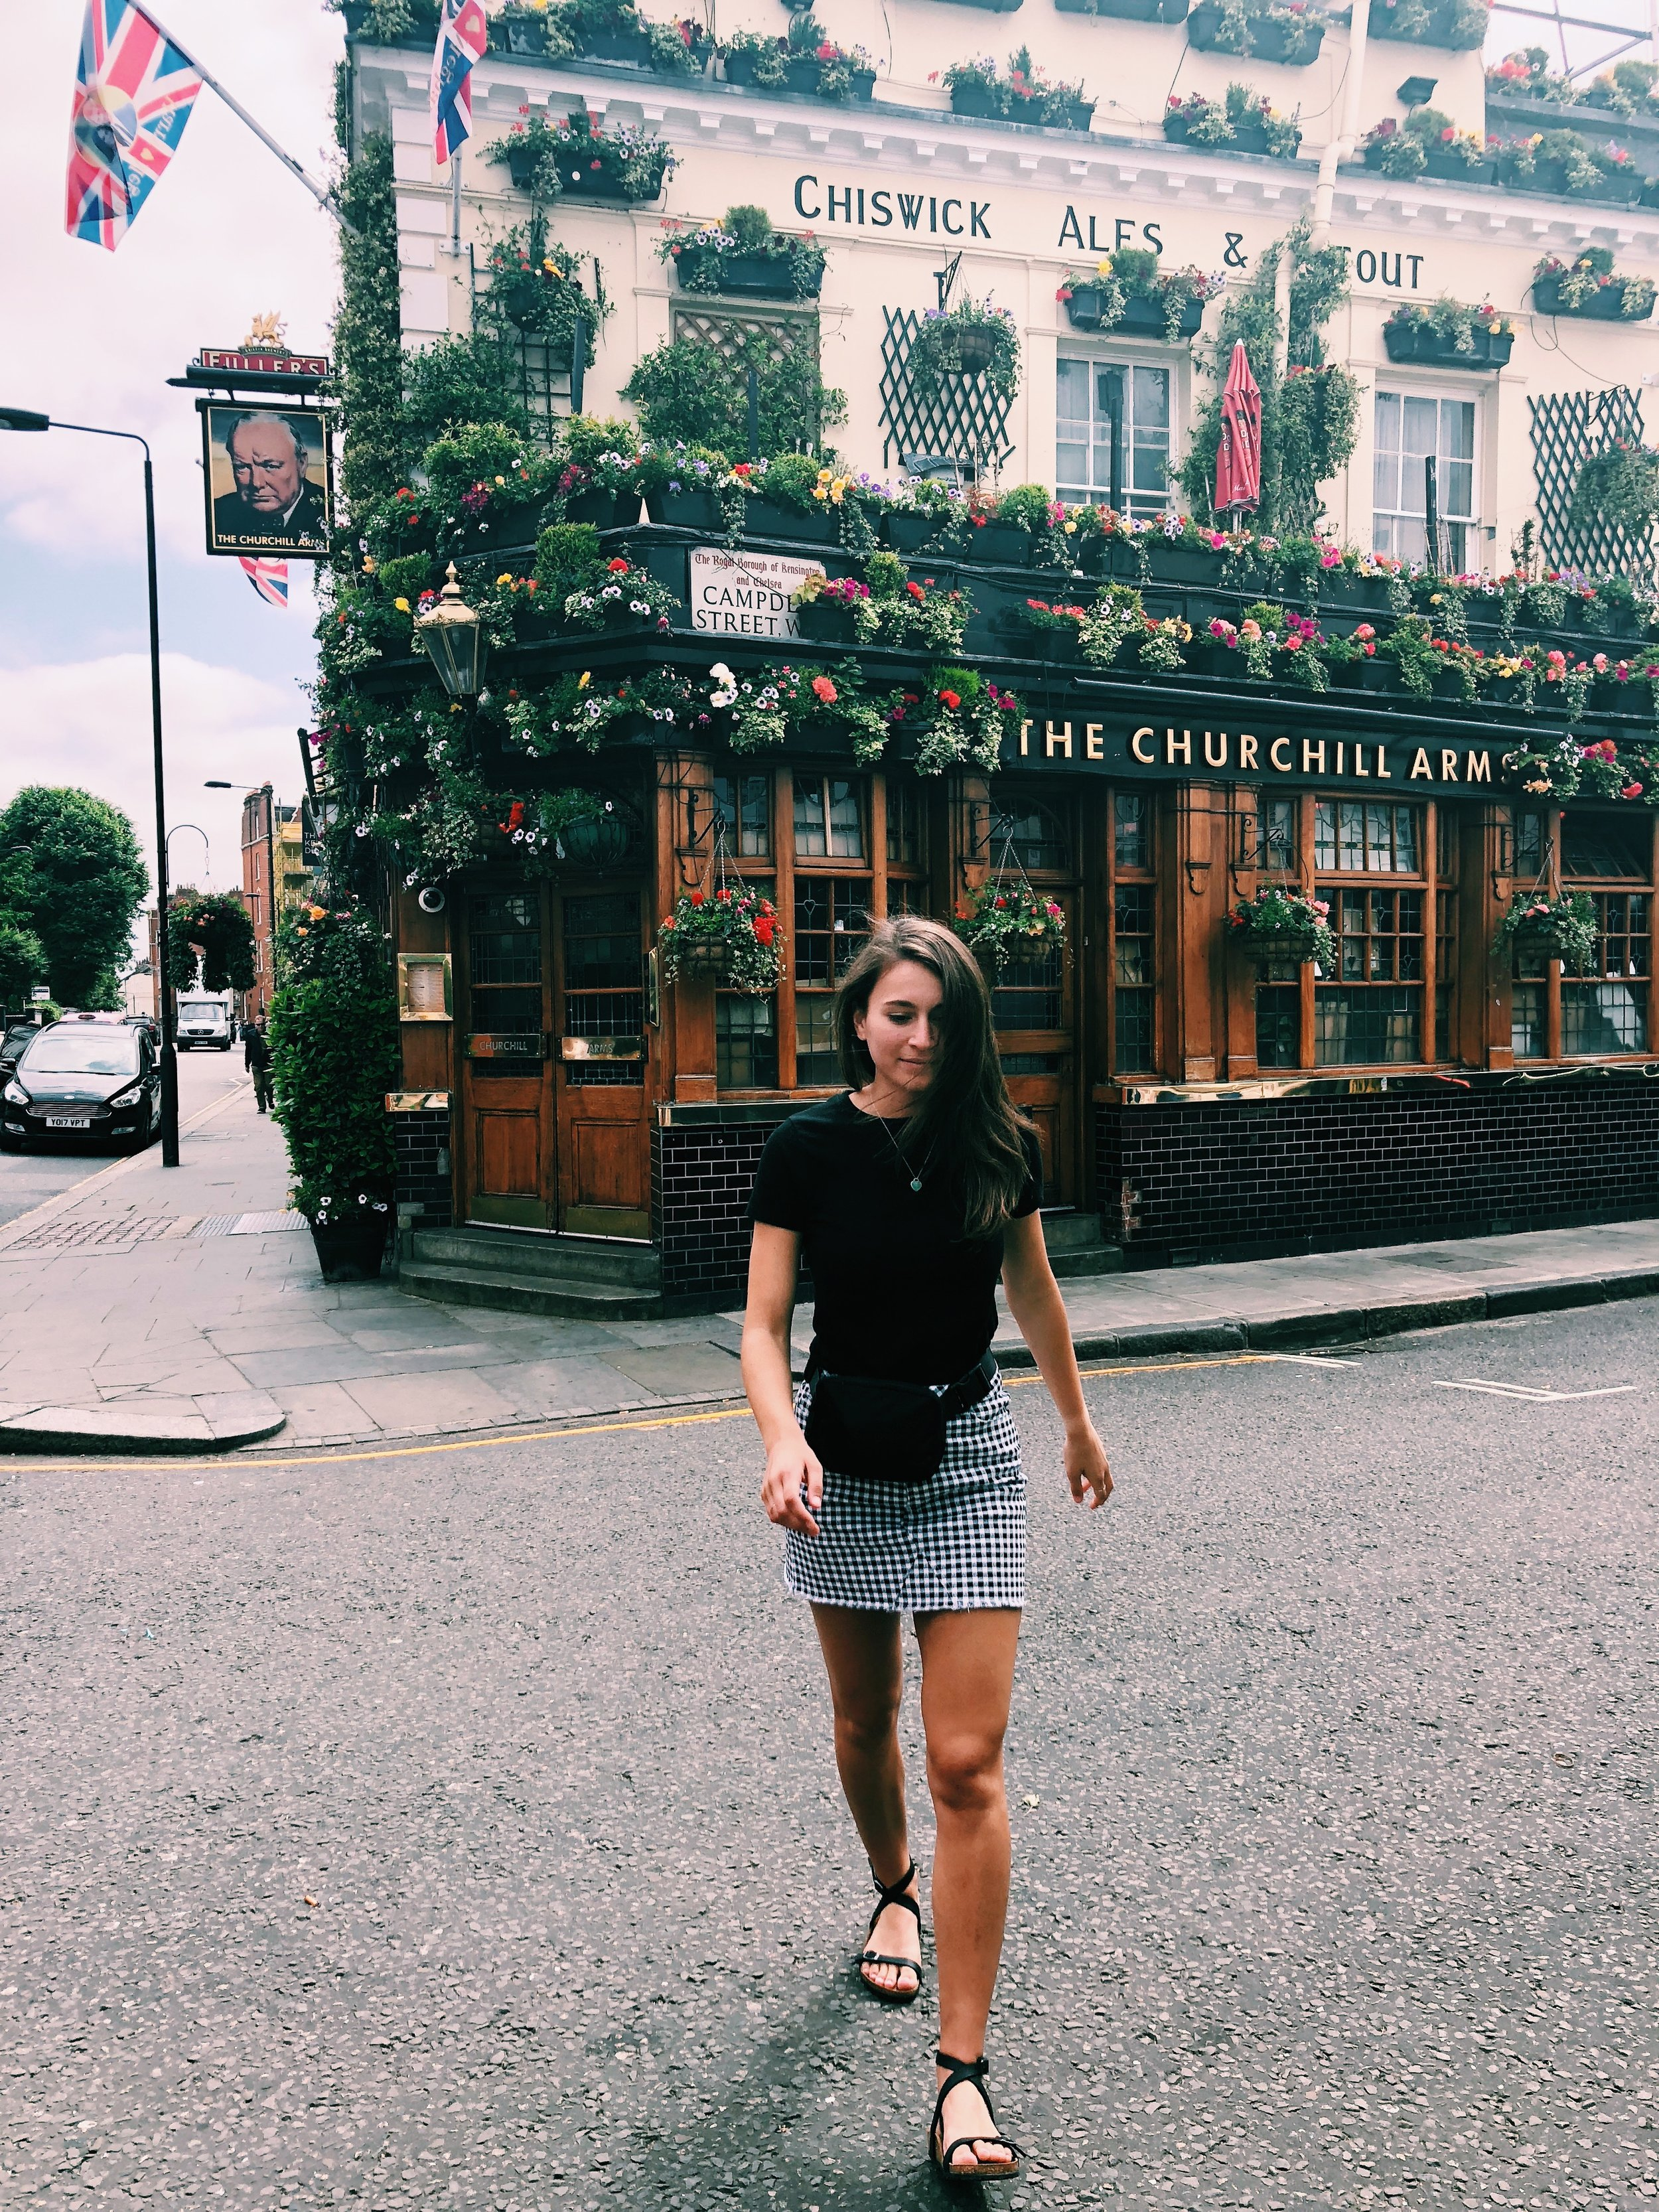 flower-pub-london.JPG